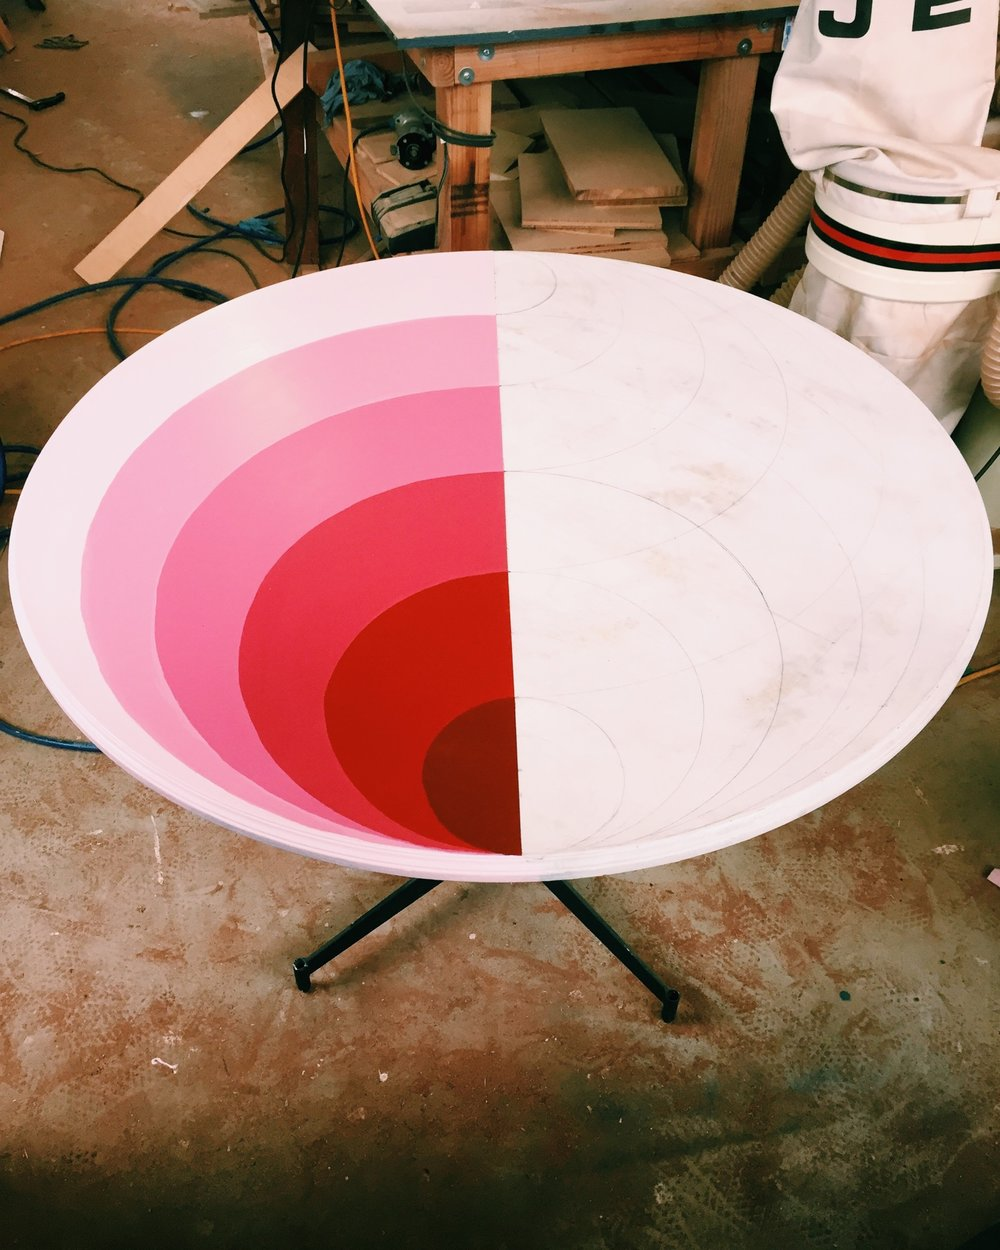 Kristina was working on this awesome circular table that we've reclaimed. Here is the first half of the table painted. The other half will be different gradients of blue.